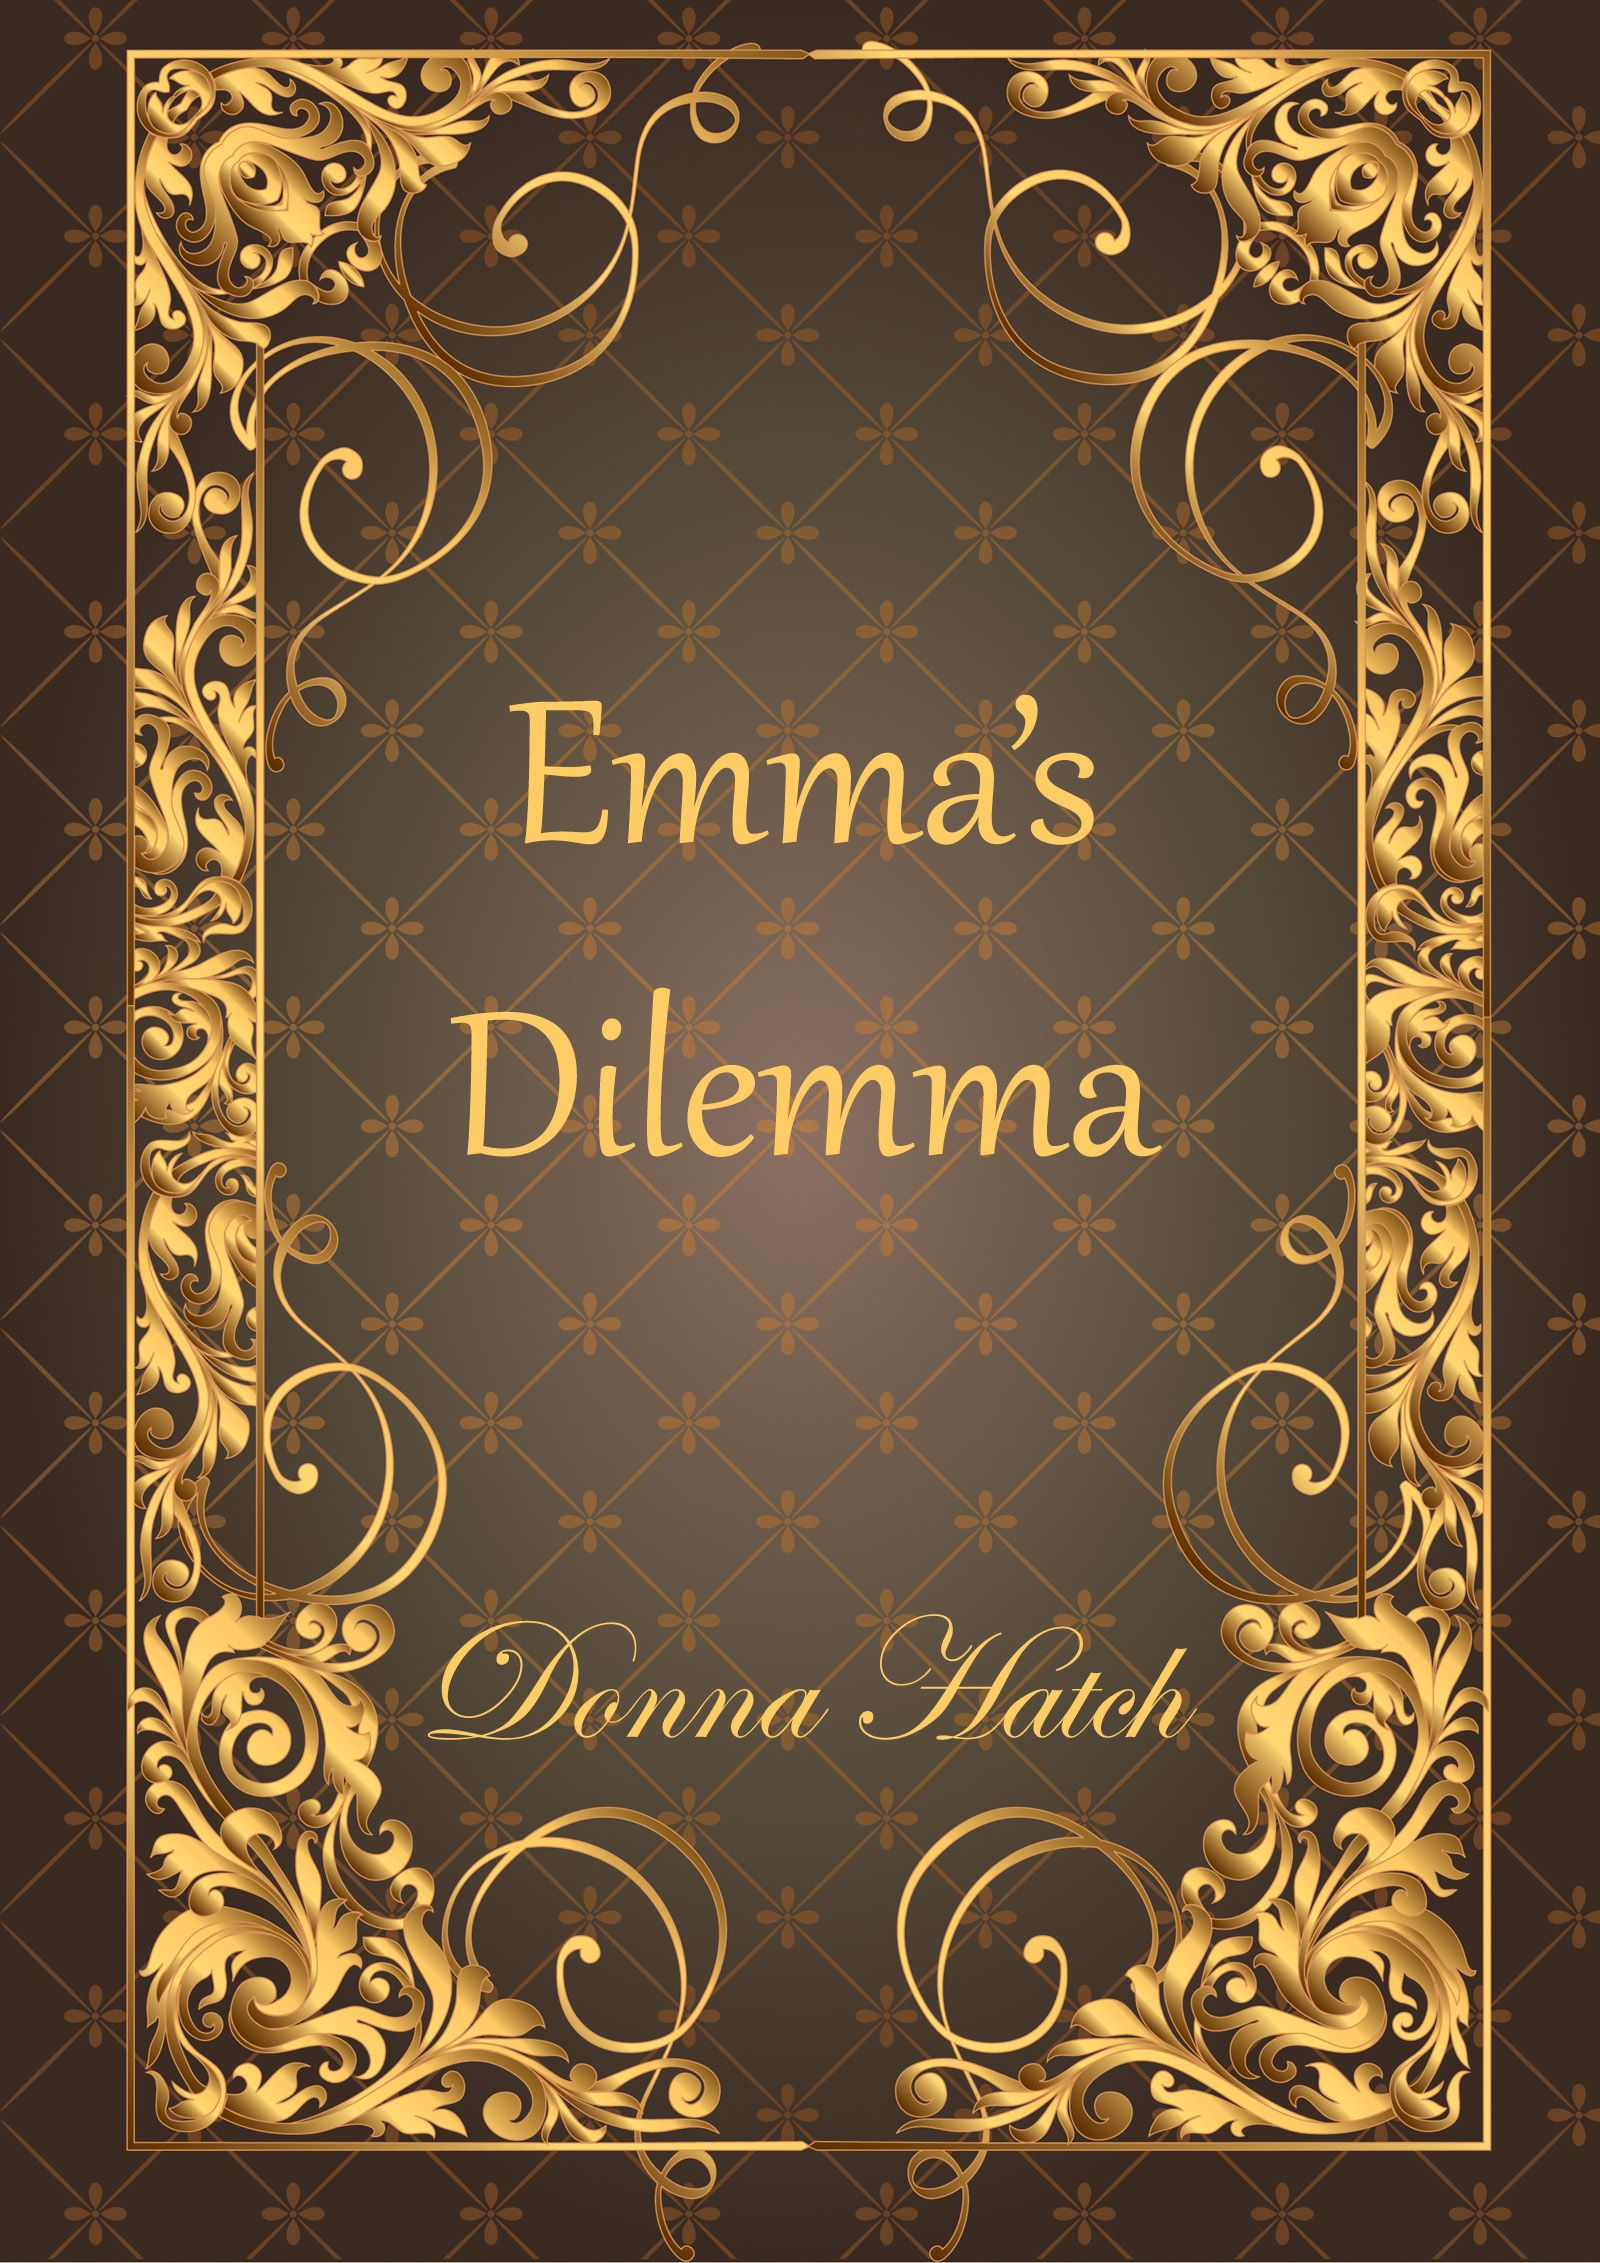 Book Cover Pattern Uk : Emmas dilemma bookcover copy g gothic